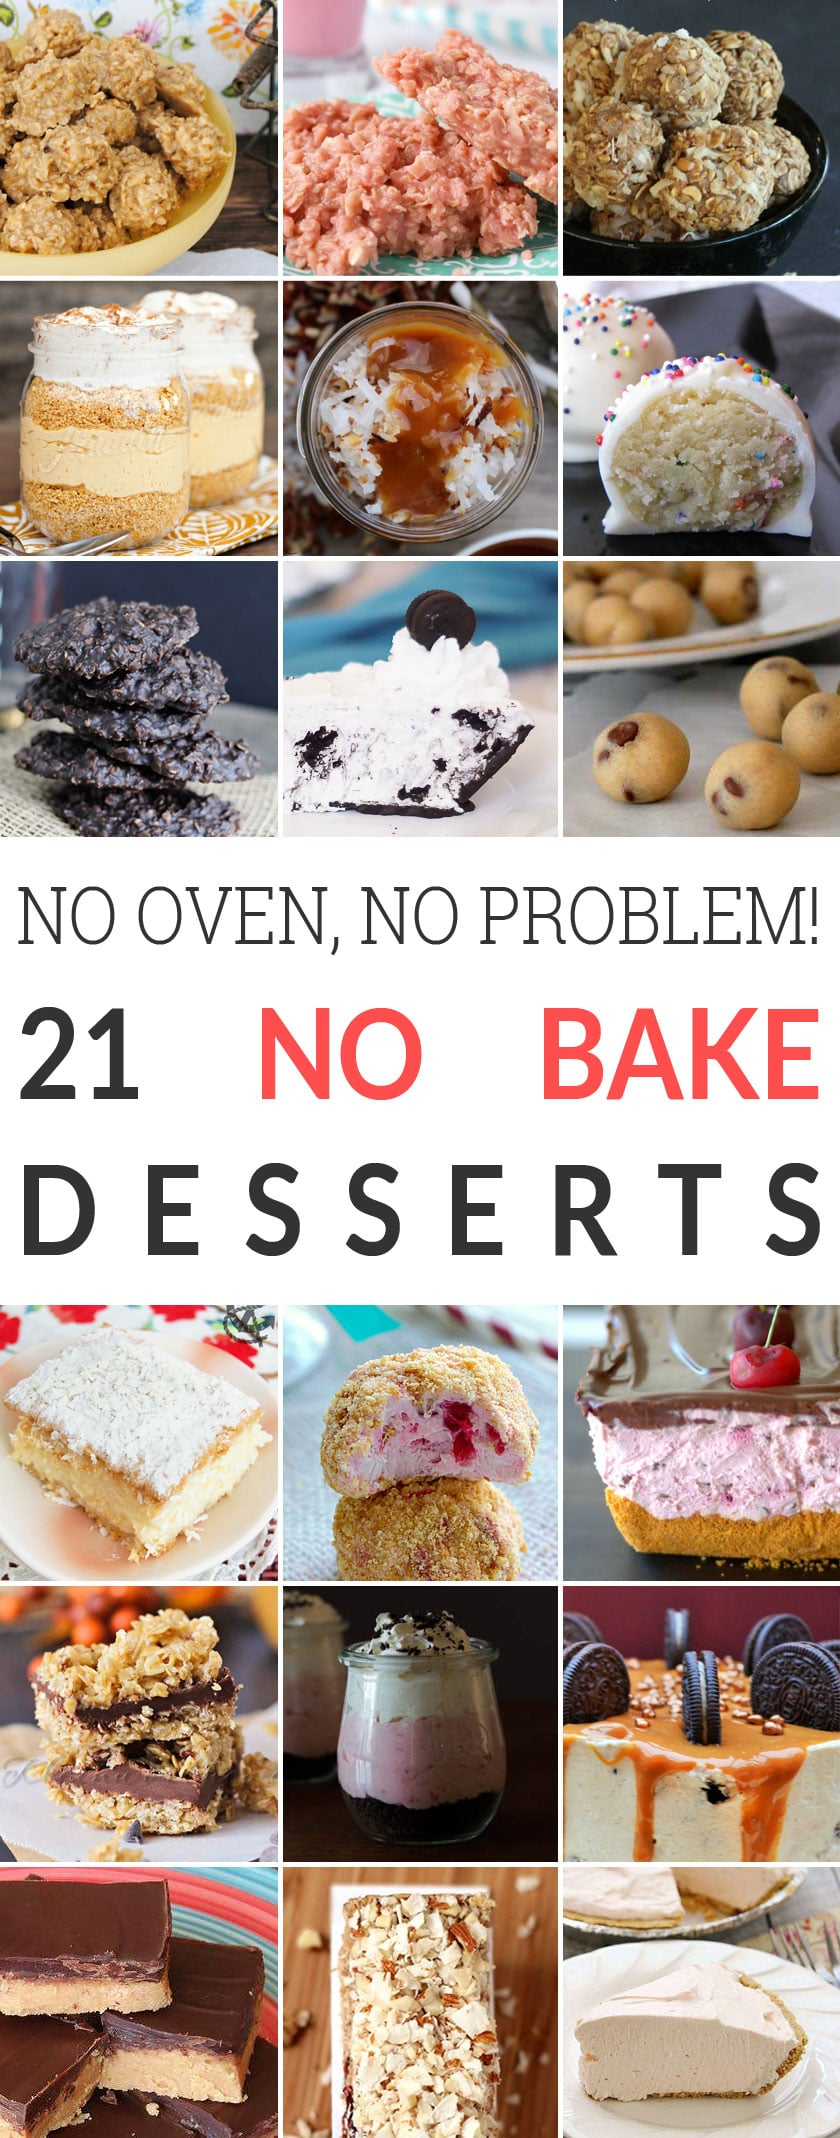 No oven, no problem: 21 no-bake dessert recipes